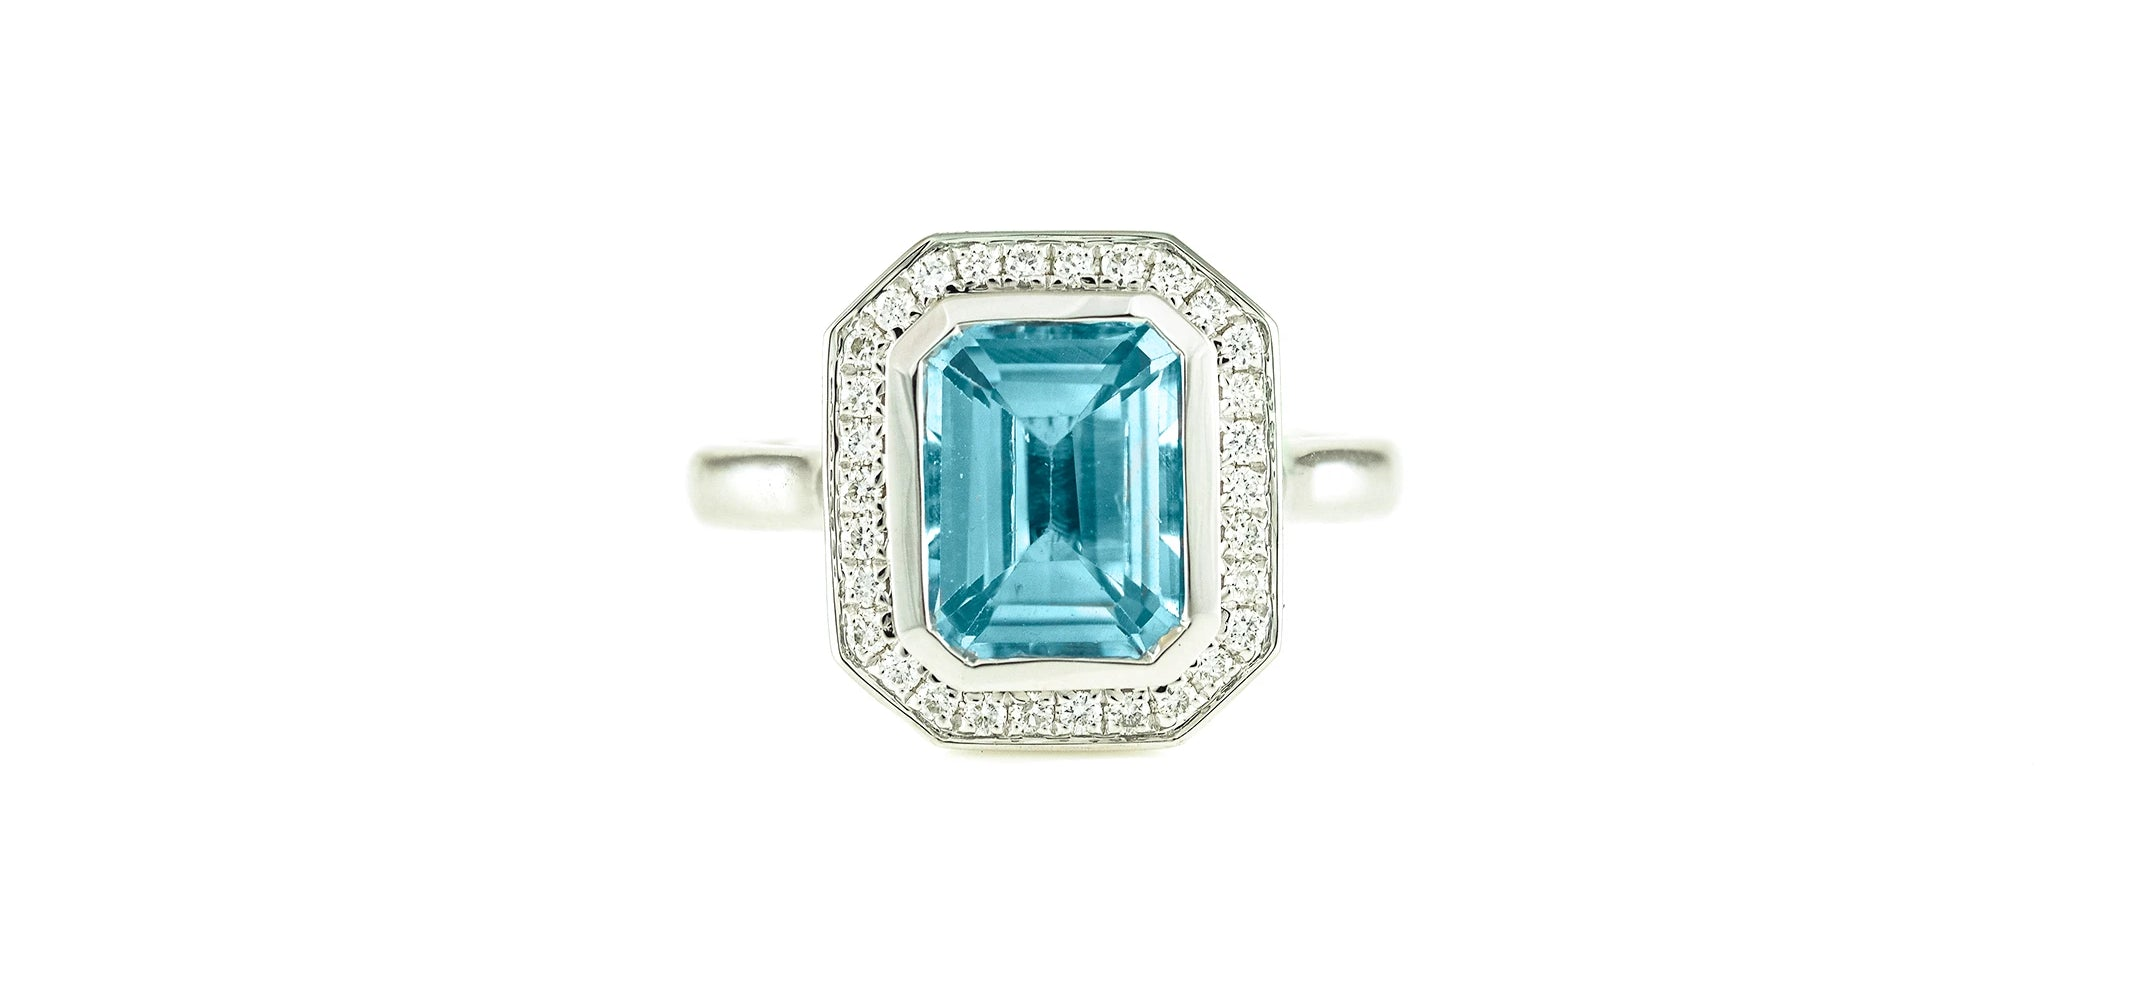 Art deco style emerald cut blue topaz surrounded by round brilliant cut diamonds on a 9ct white gold